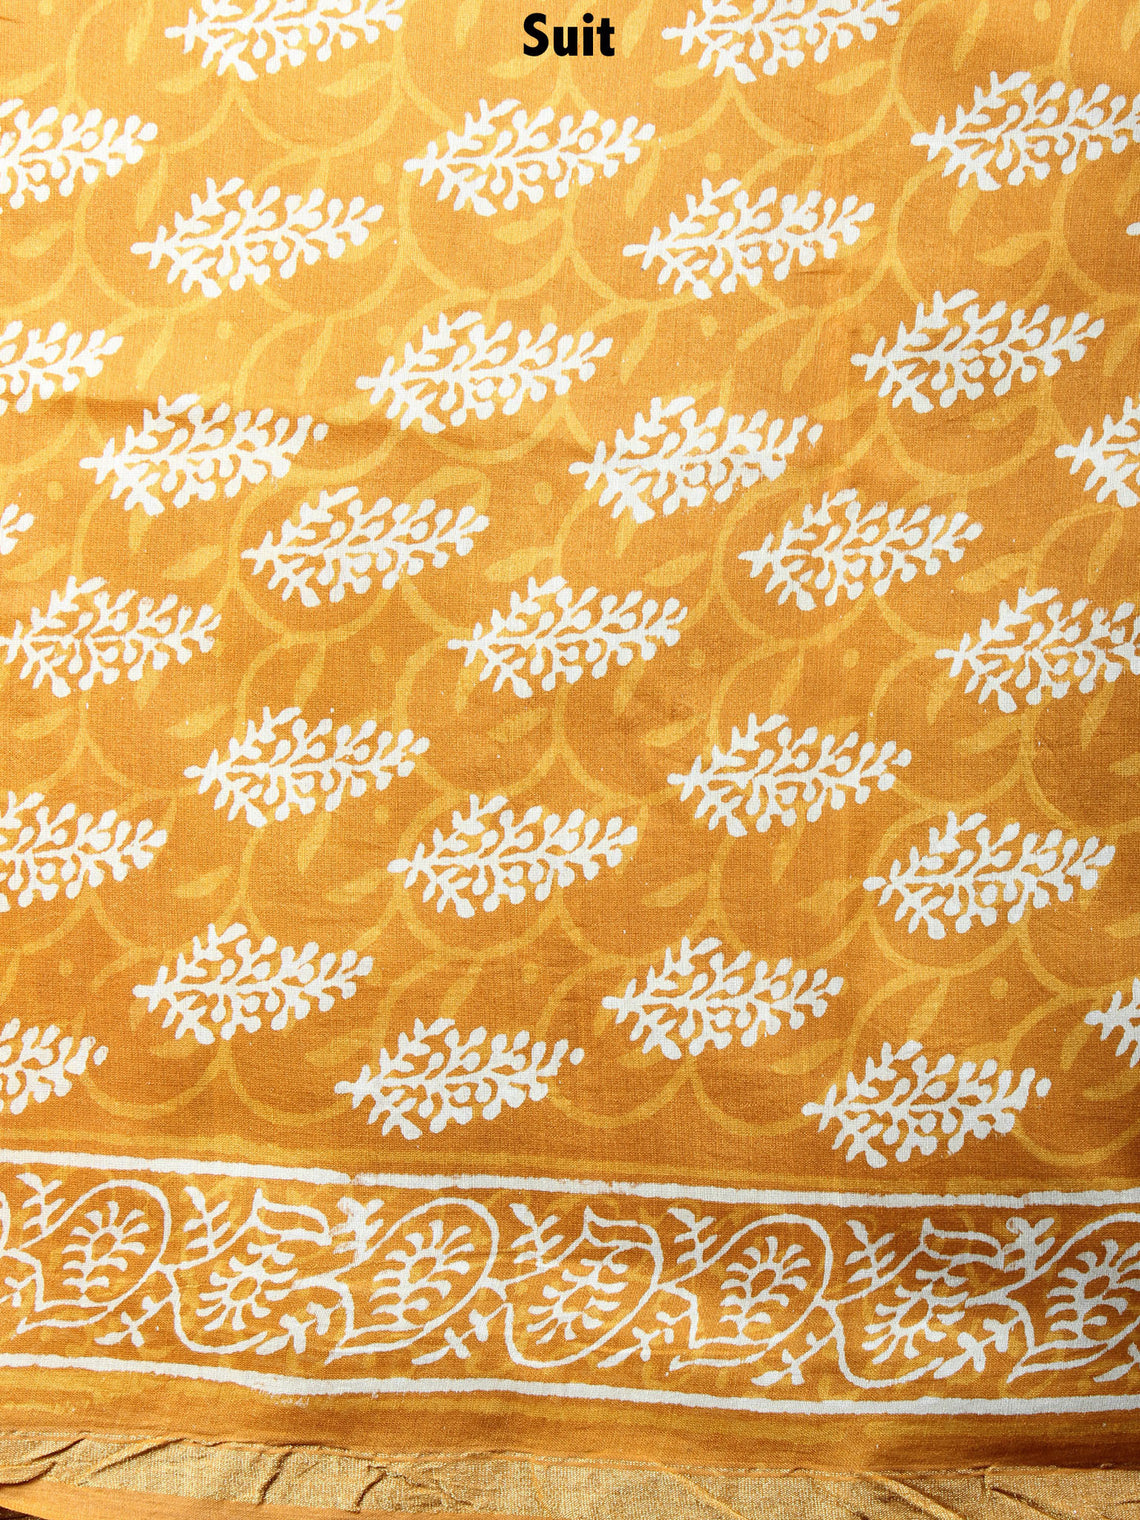 GoldenRod Yellow Hand Block Printed Chanderi Kurta-Salwar Fabric With Chanderi Dupatta - S1628069